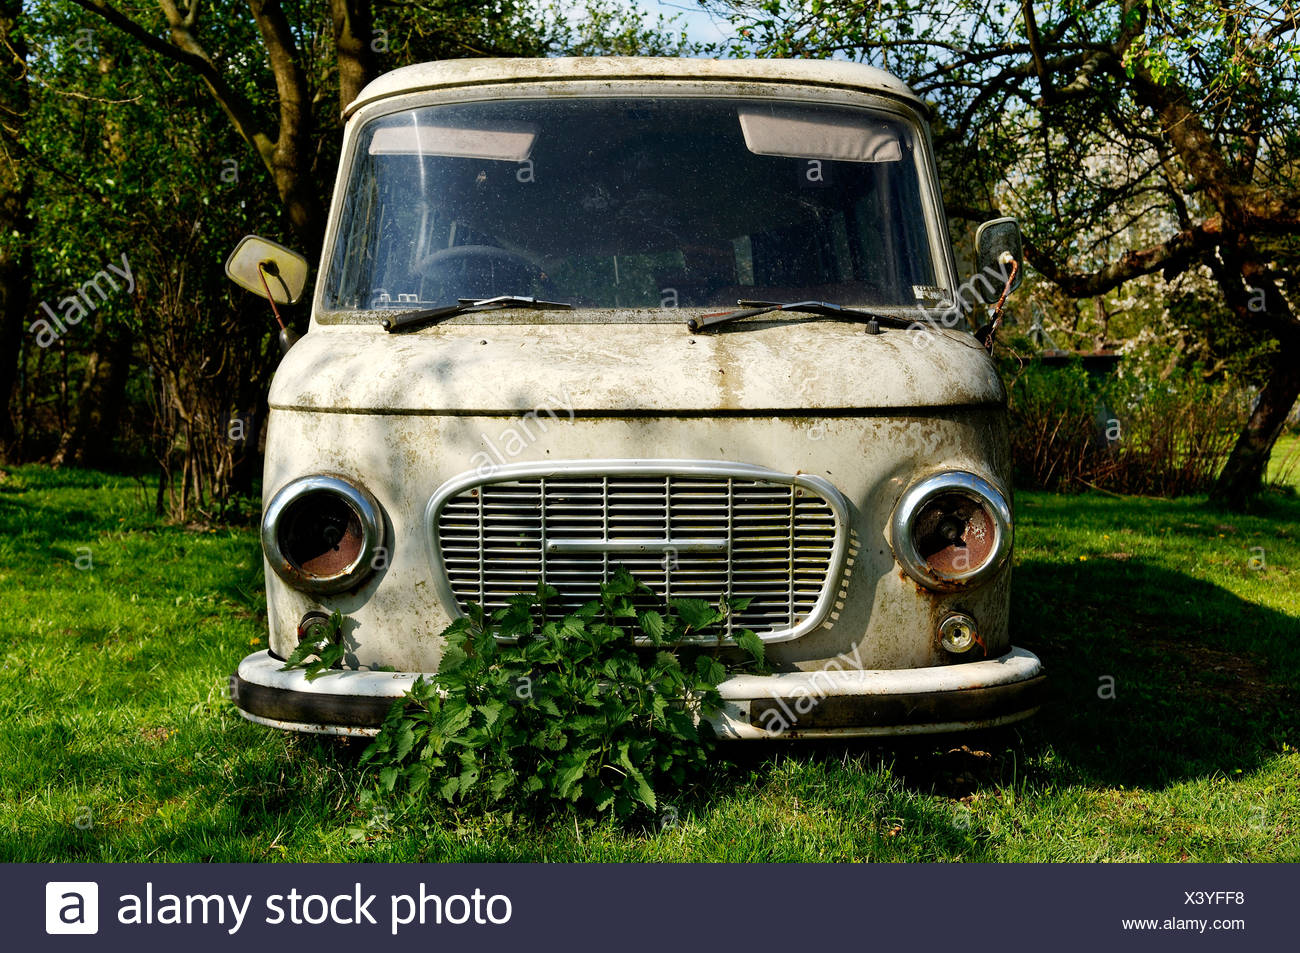 Old minibus from the DDR in a garden, Roegnitz, Mecklenburg-Western Pomerania, Germany, Europe - Stock Image